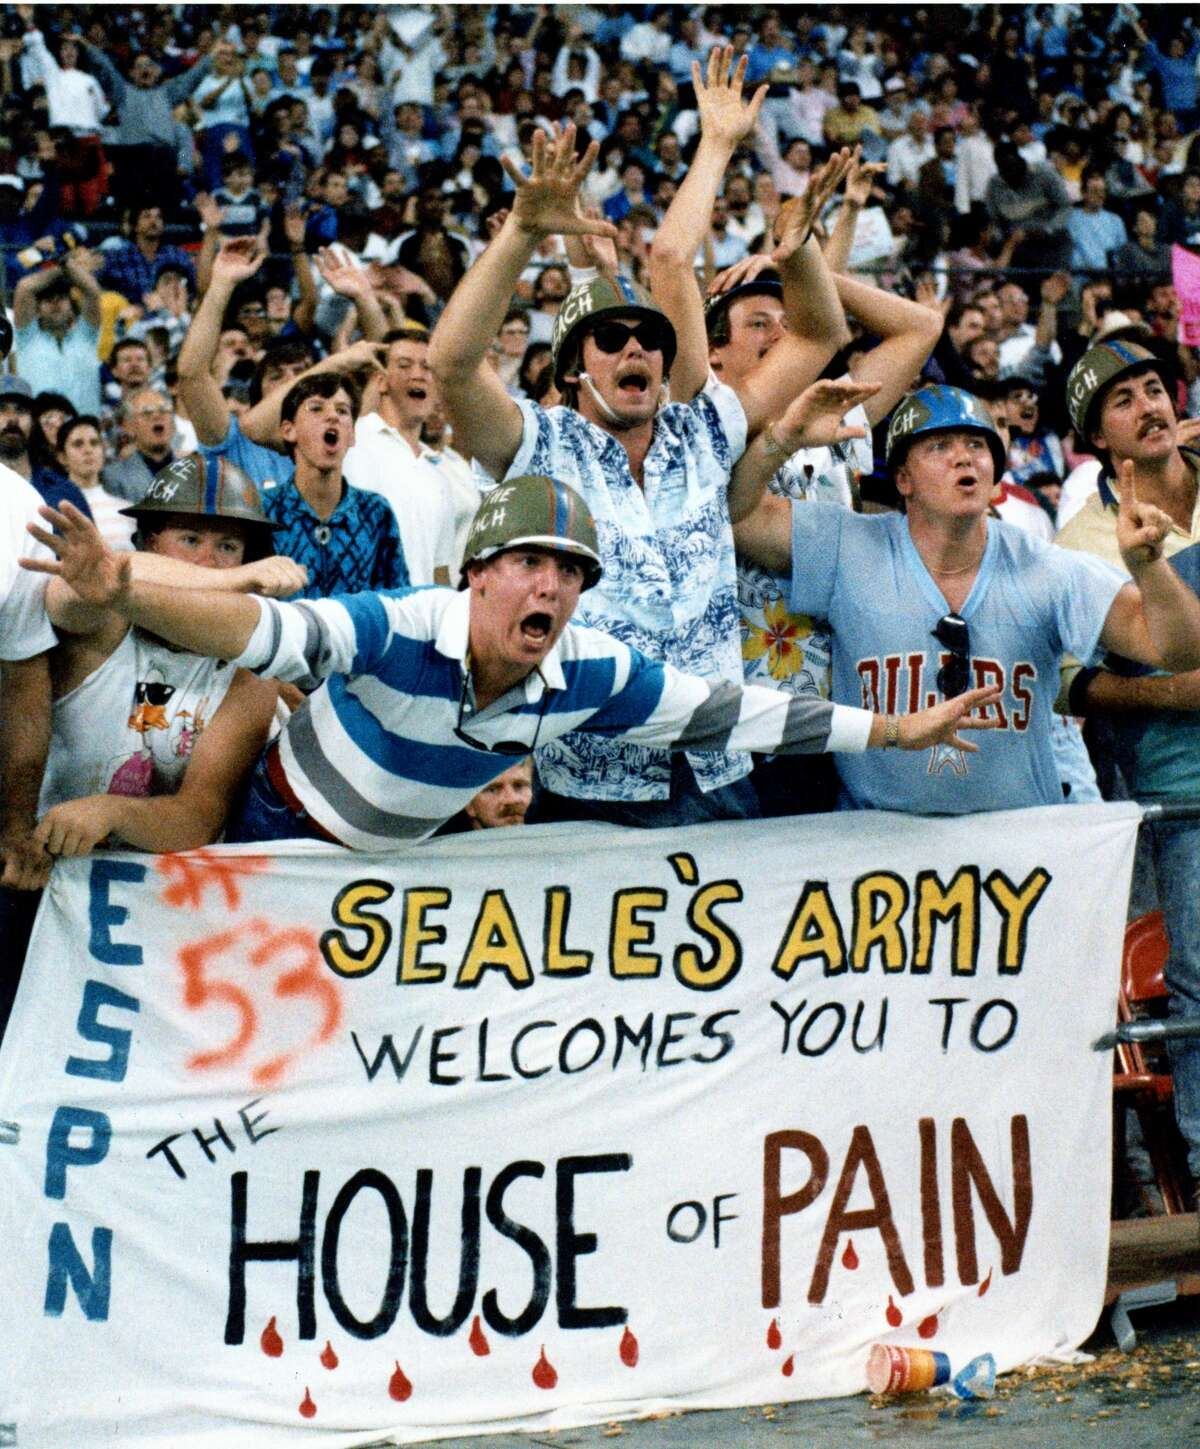 Members of Seale's Army, named for Oiler linebacker Eugene Seale, harass the Pittsburgh Steelers during their game in the Astrodome Sunday December 4, 1988. Leading the jeers are, from left, Mark Provost, Greg Wollin and Greg Beard. Unfortunately for them, the Oilers lost 37-34.